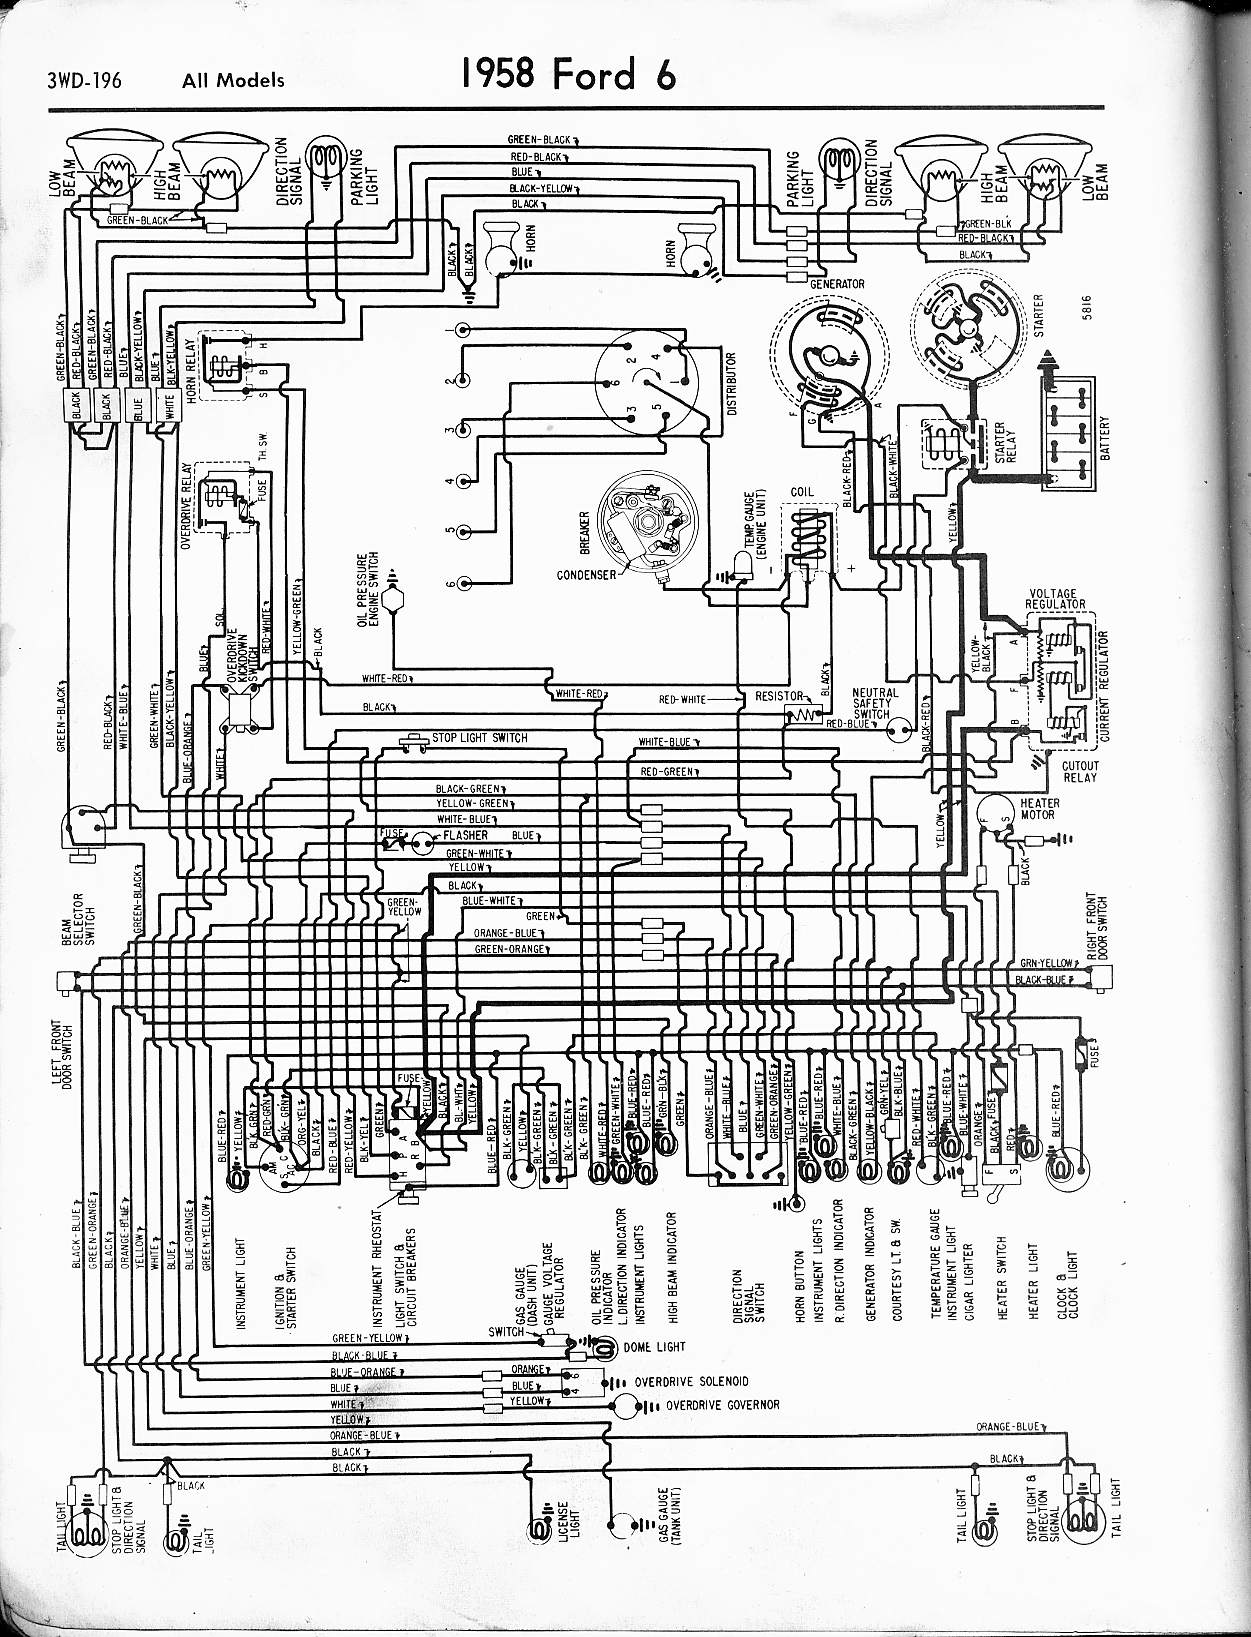 wiring diagram for 1949 ford wiring diagrams hubs 59 Chevy Truck Wiring Diagram wiring diagram for 1949 ford f1 manual e books ford generator wiring diagram 1949 ford wiring